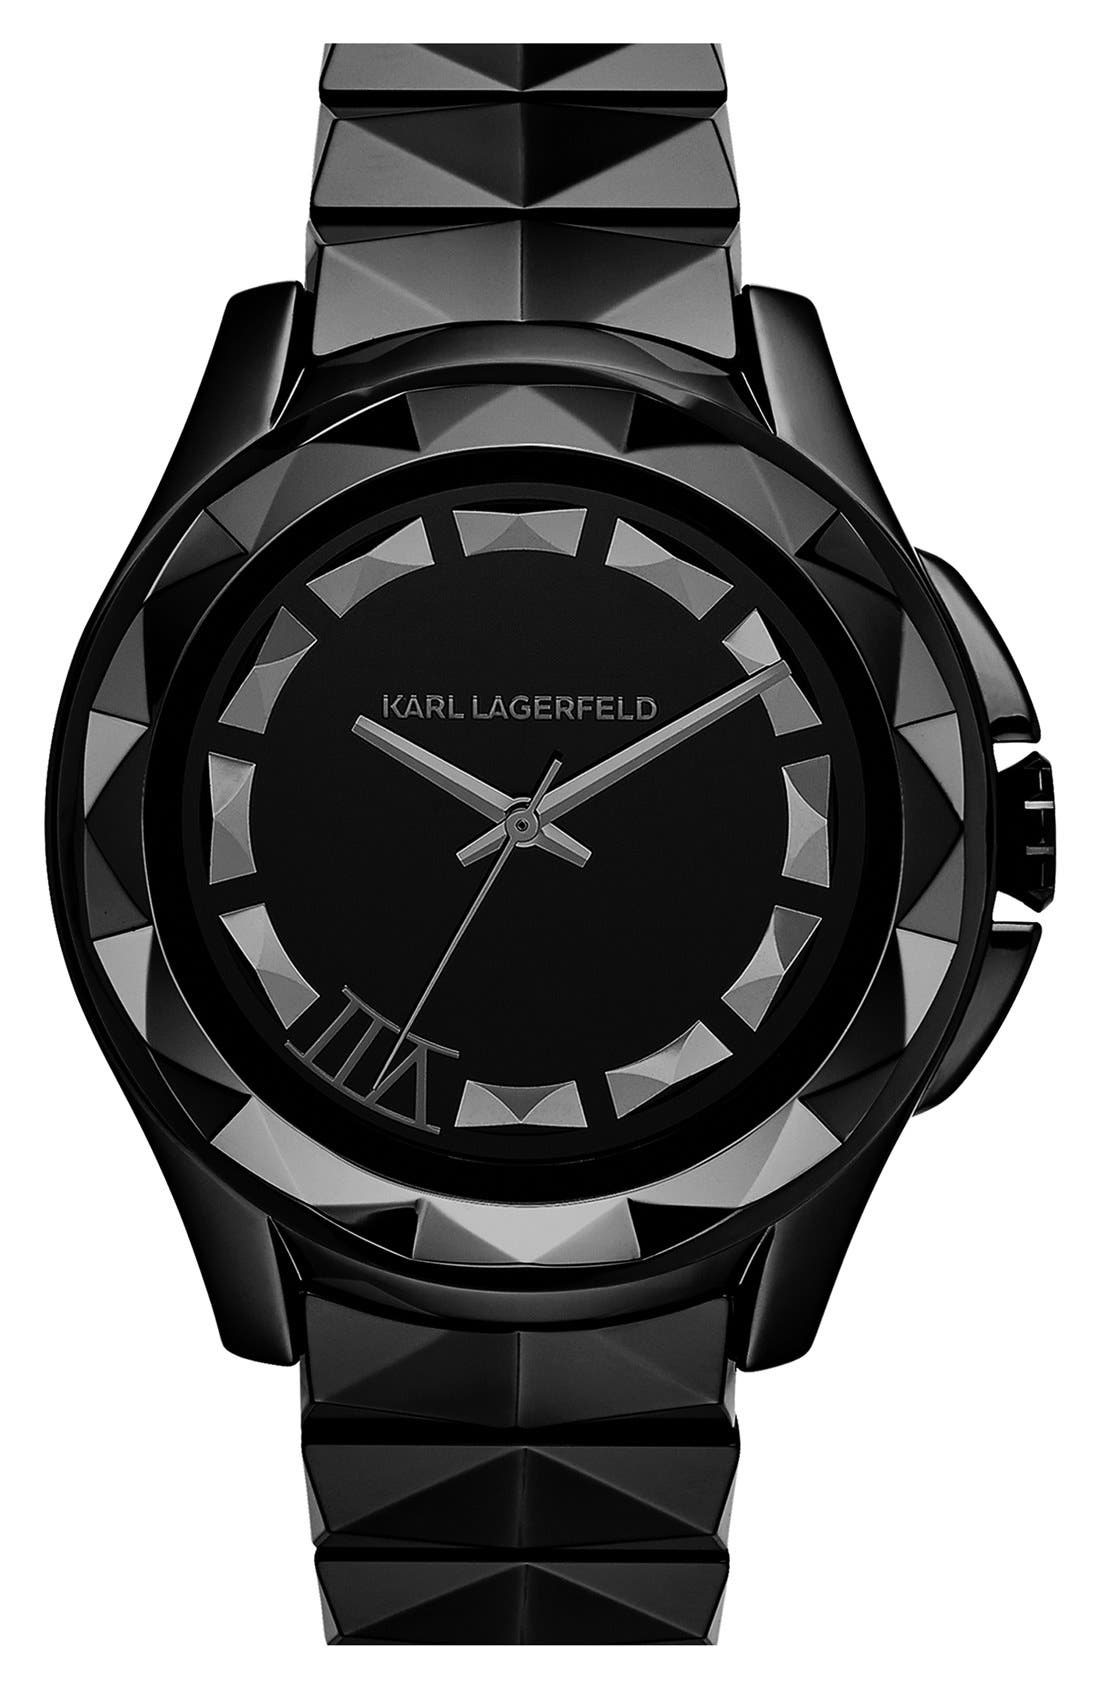 Main Image - KARL LAGERFELD '7' Beveled Bezel Ceramic Bracelet Watch, 44mm